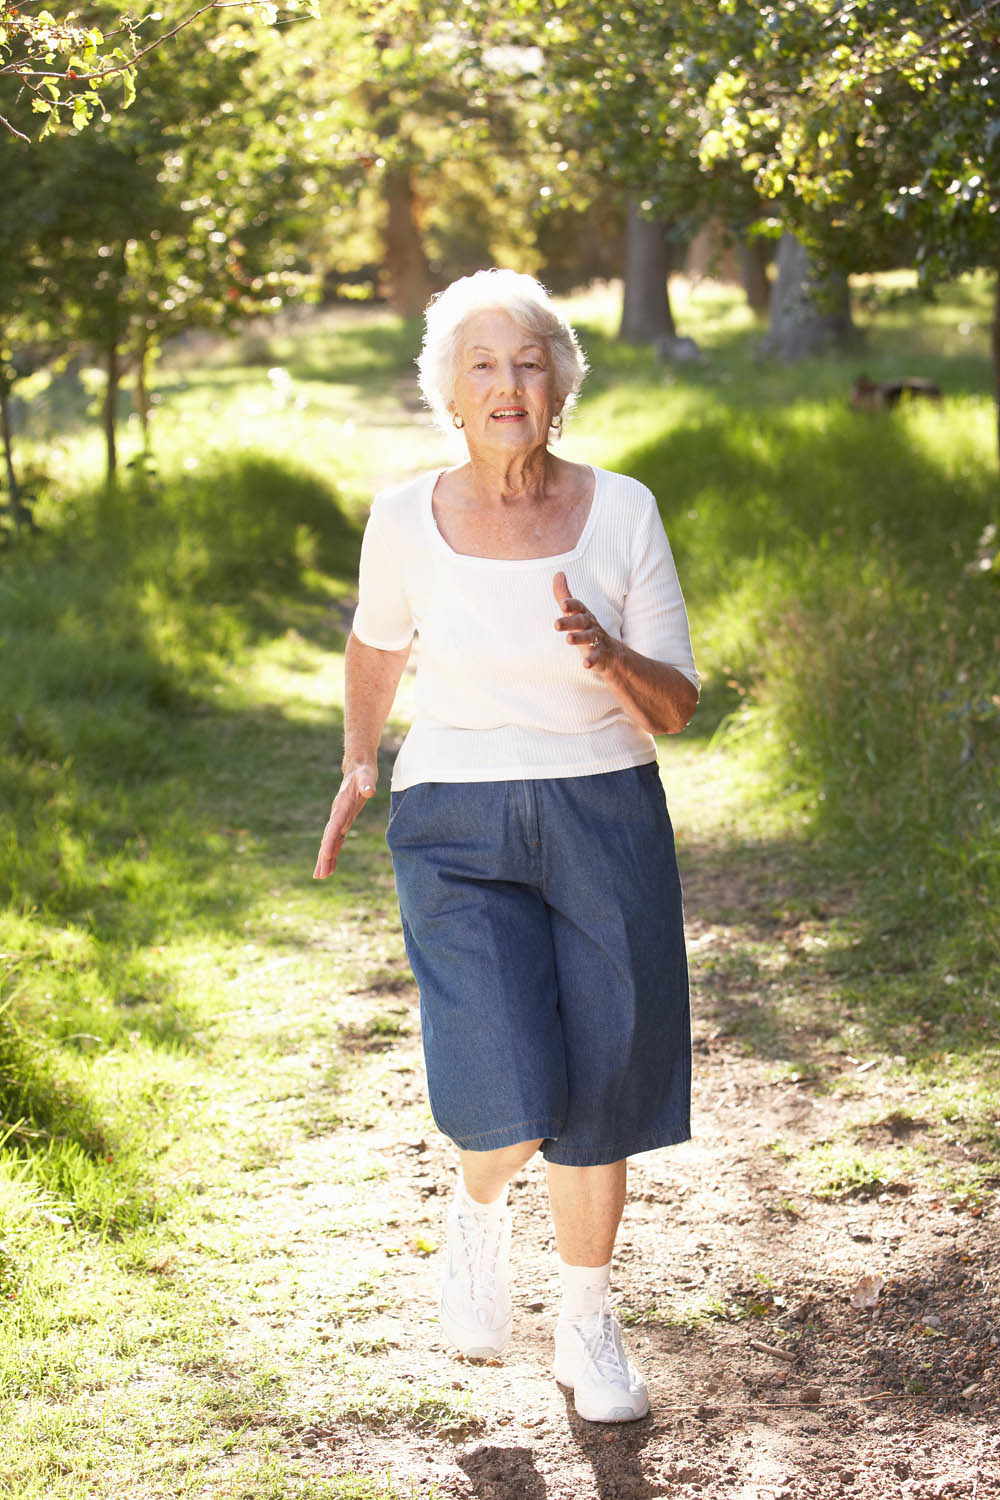 Elderly-woman-jog-in-park1